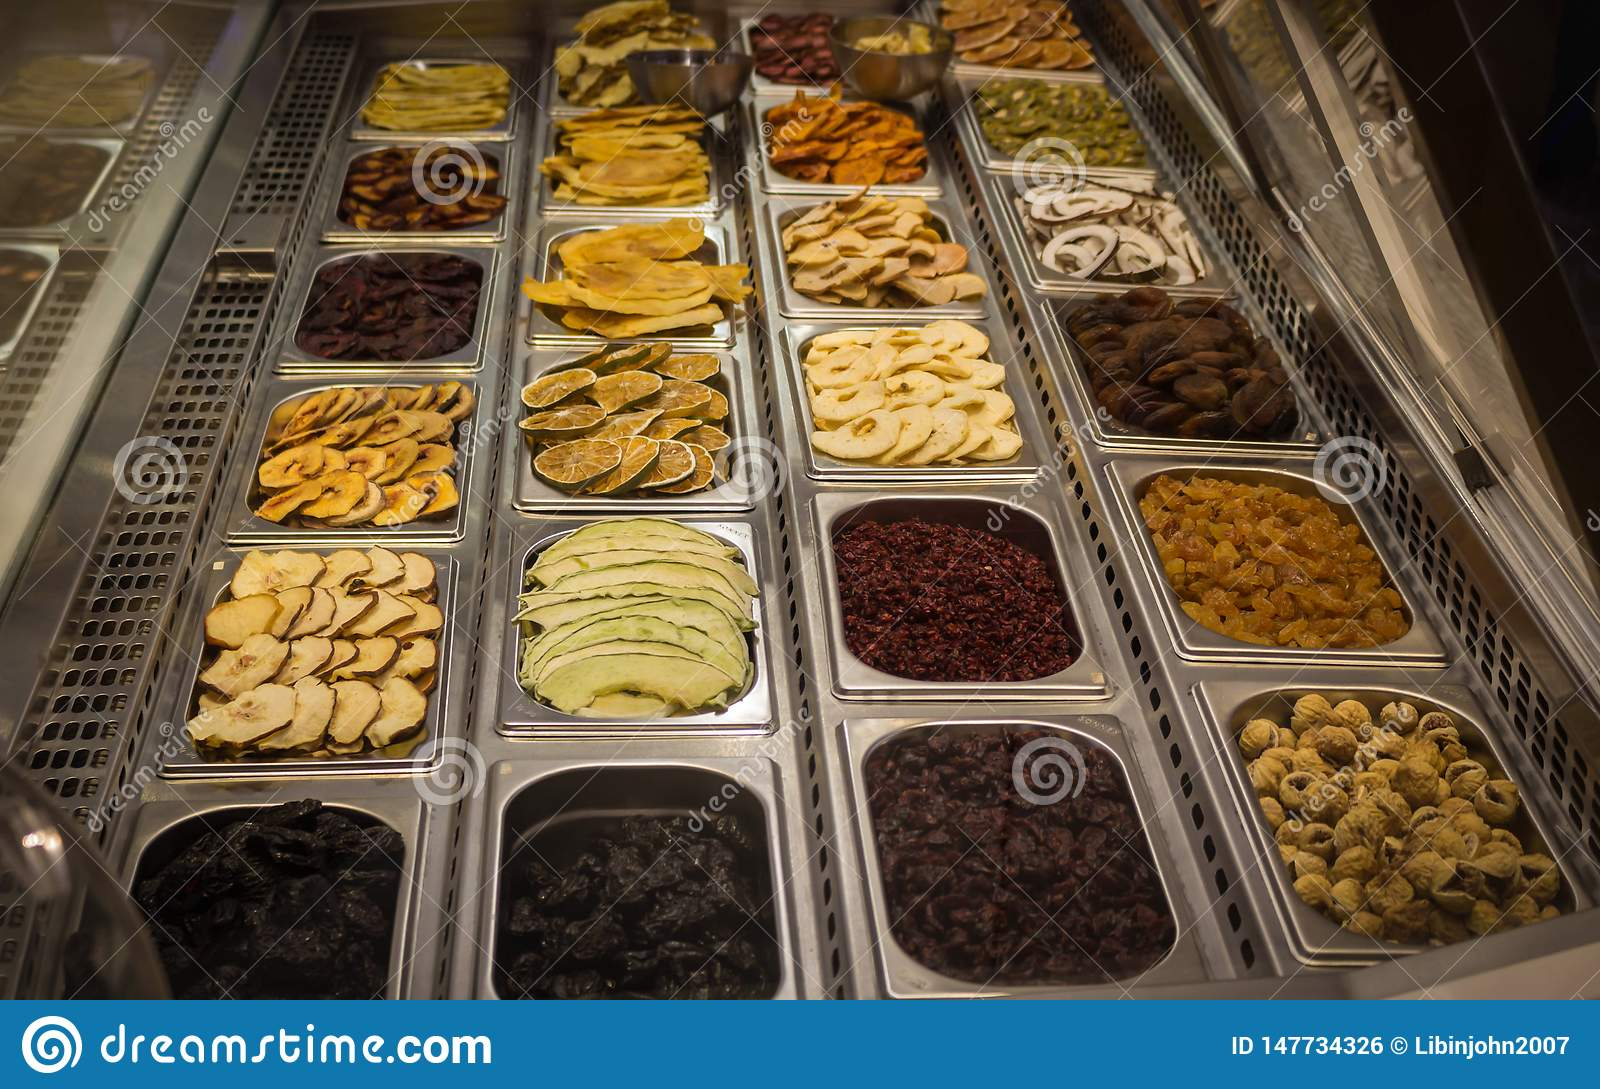 Dry Fruits kept on steel tray for selling in Dubai mall